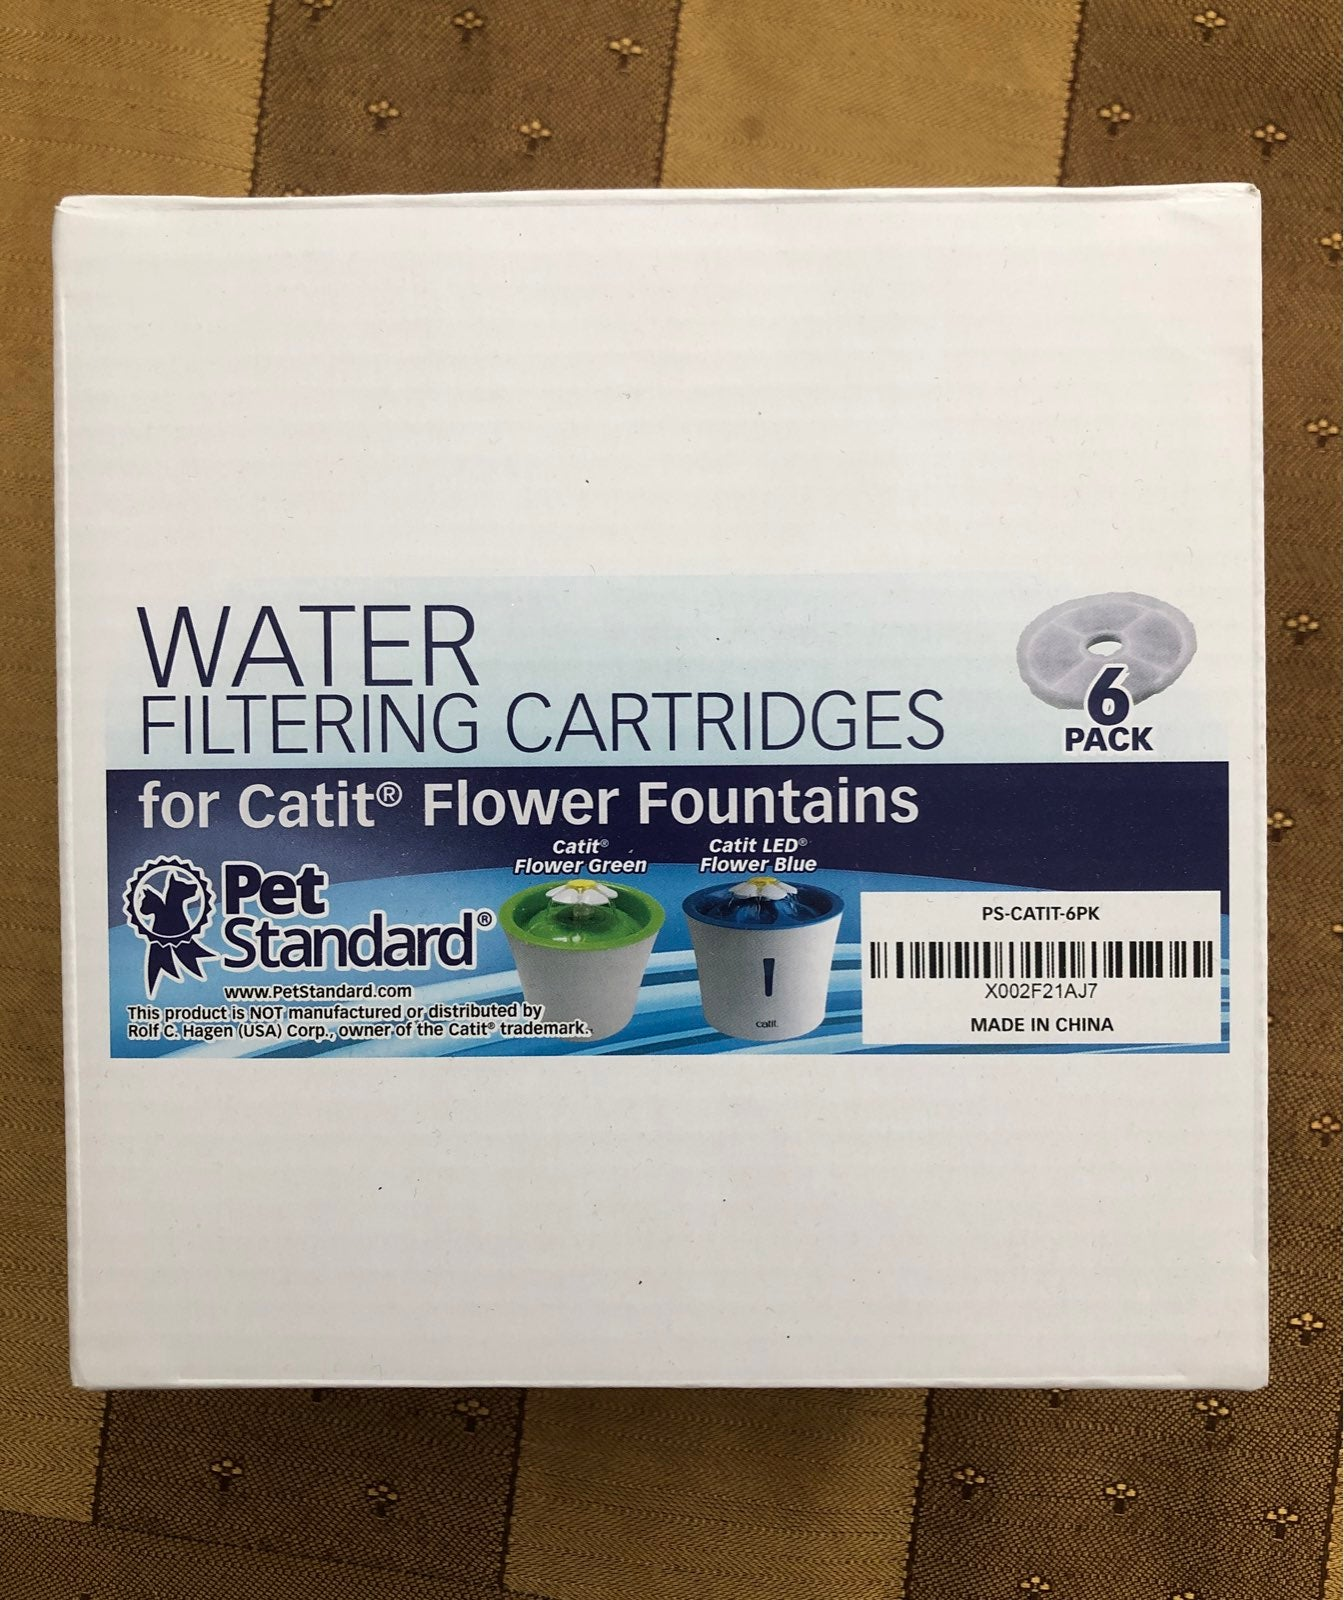 Water filtering cartridges for a cat fou